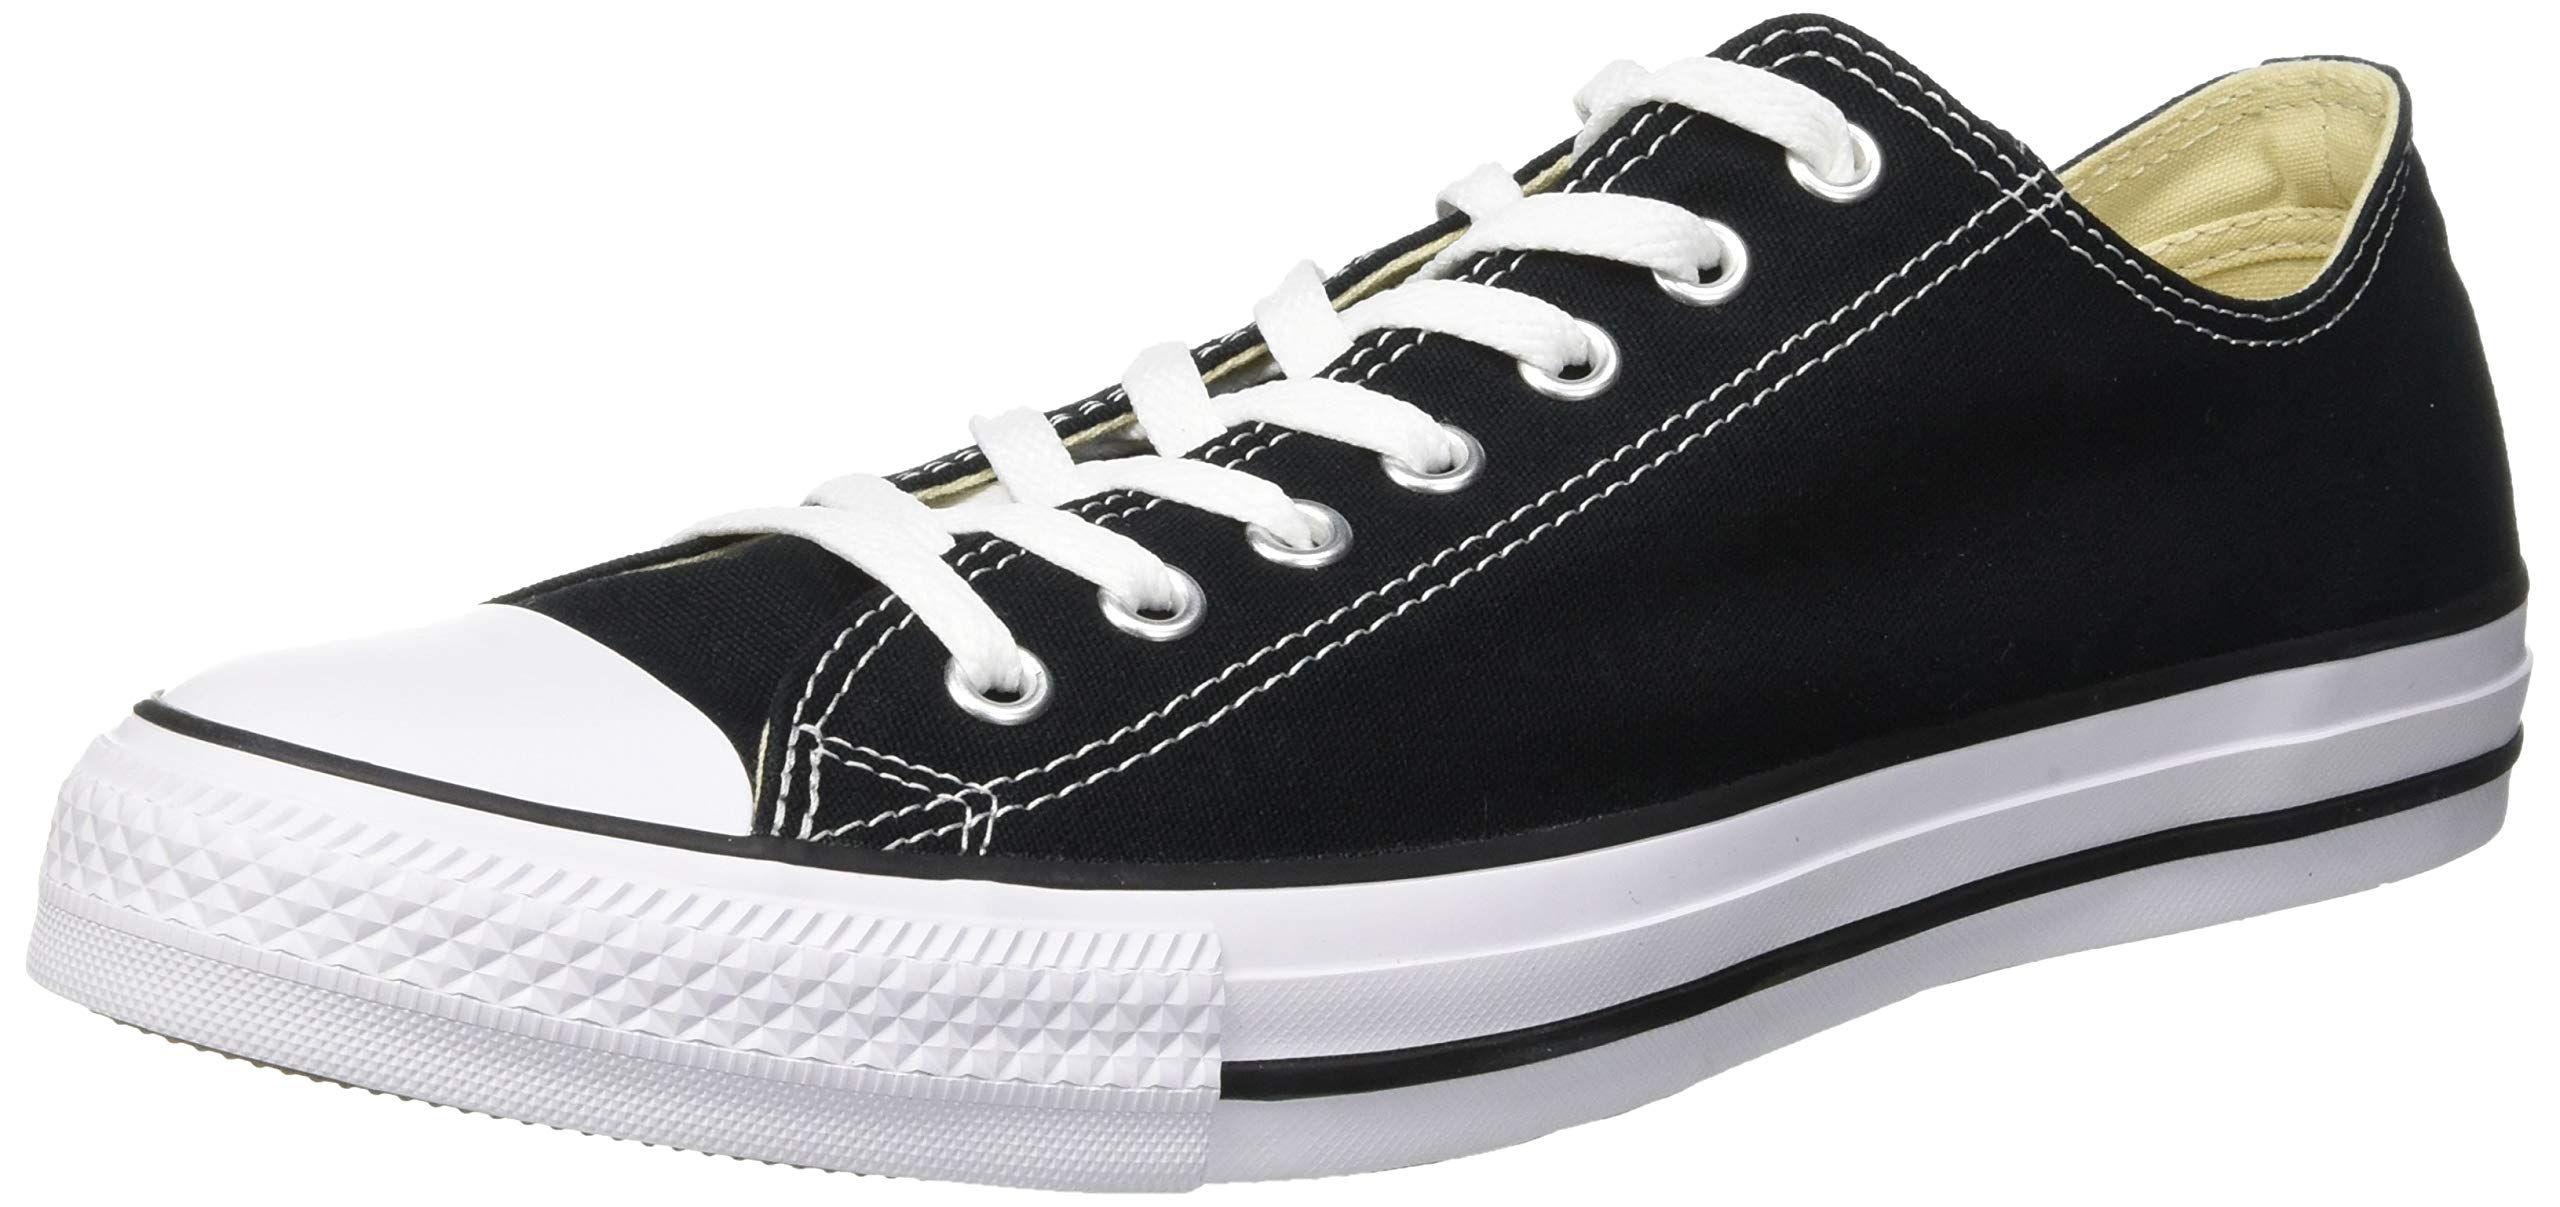 5c8770833d97 Converse Unisex Chuck Taylor All Star Ox Low Top Black Sneakers - 8 B(M) US  Women   6 D(M) US Men